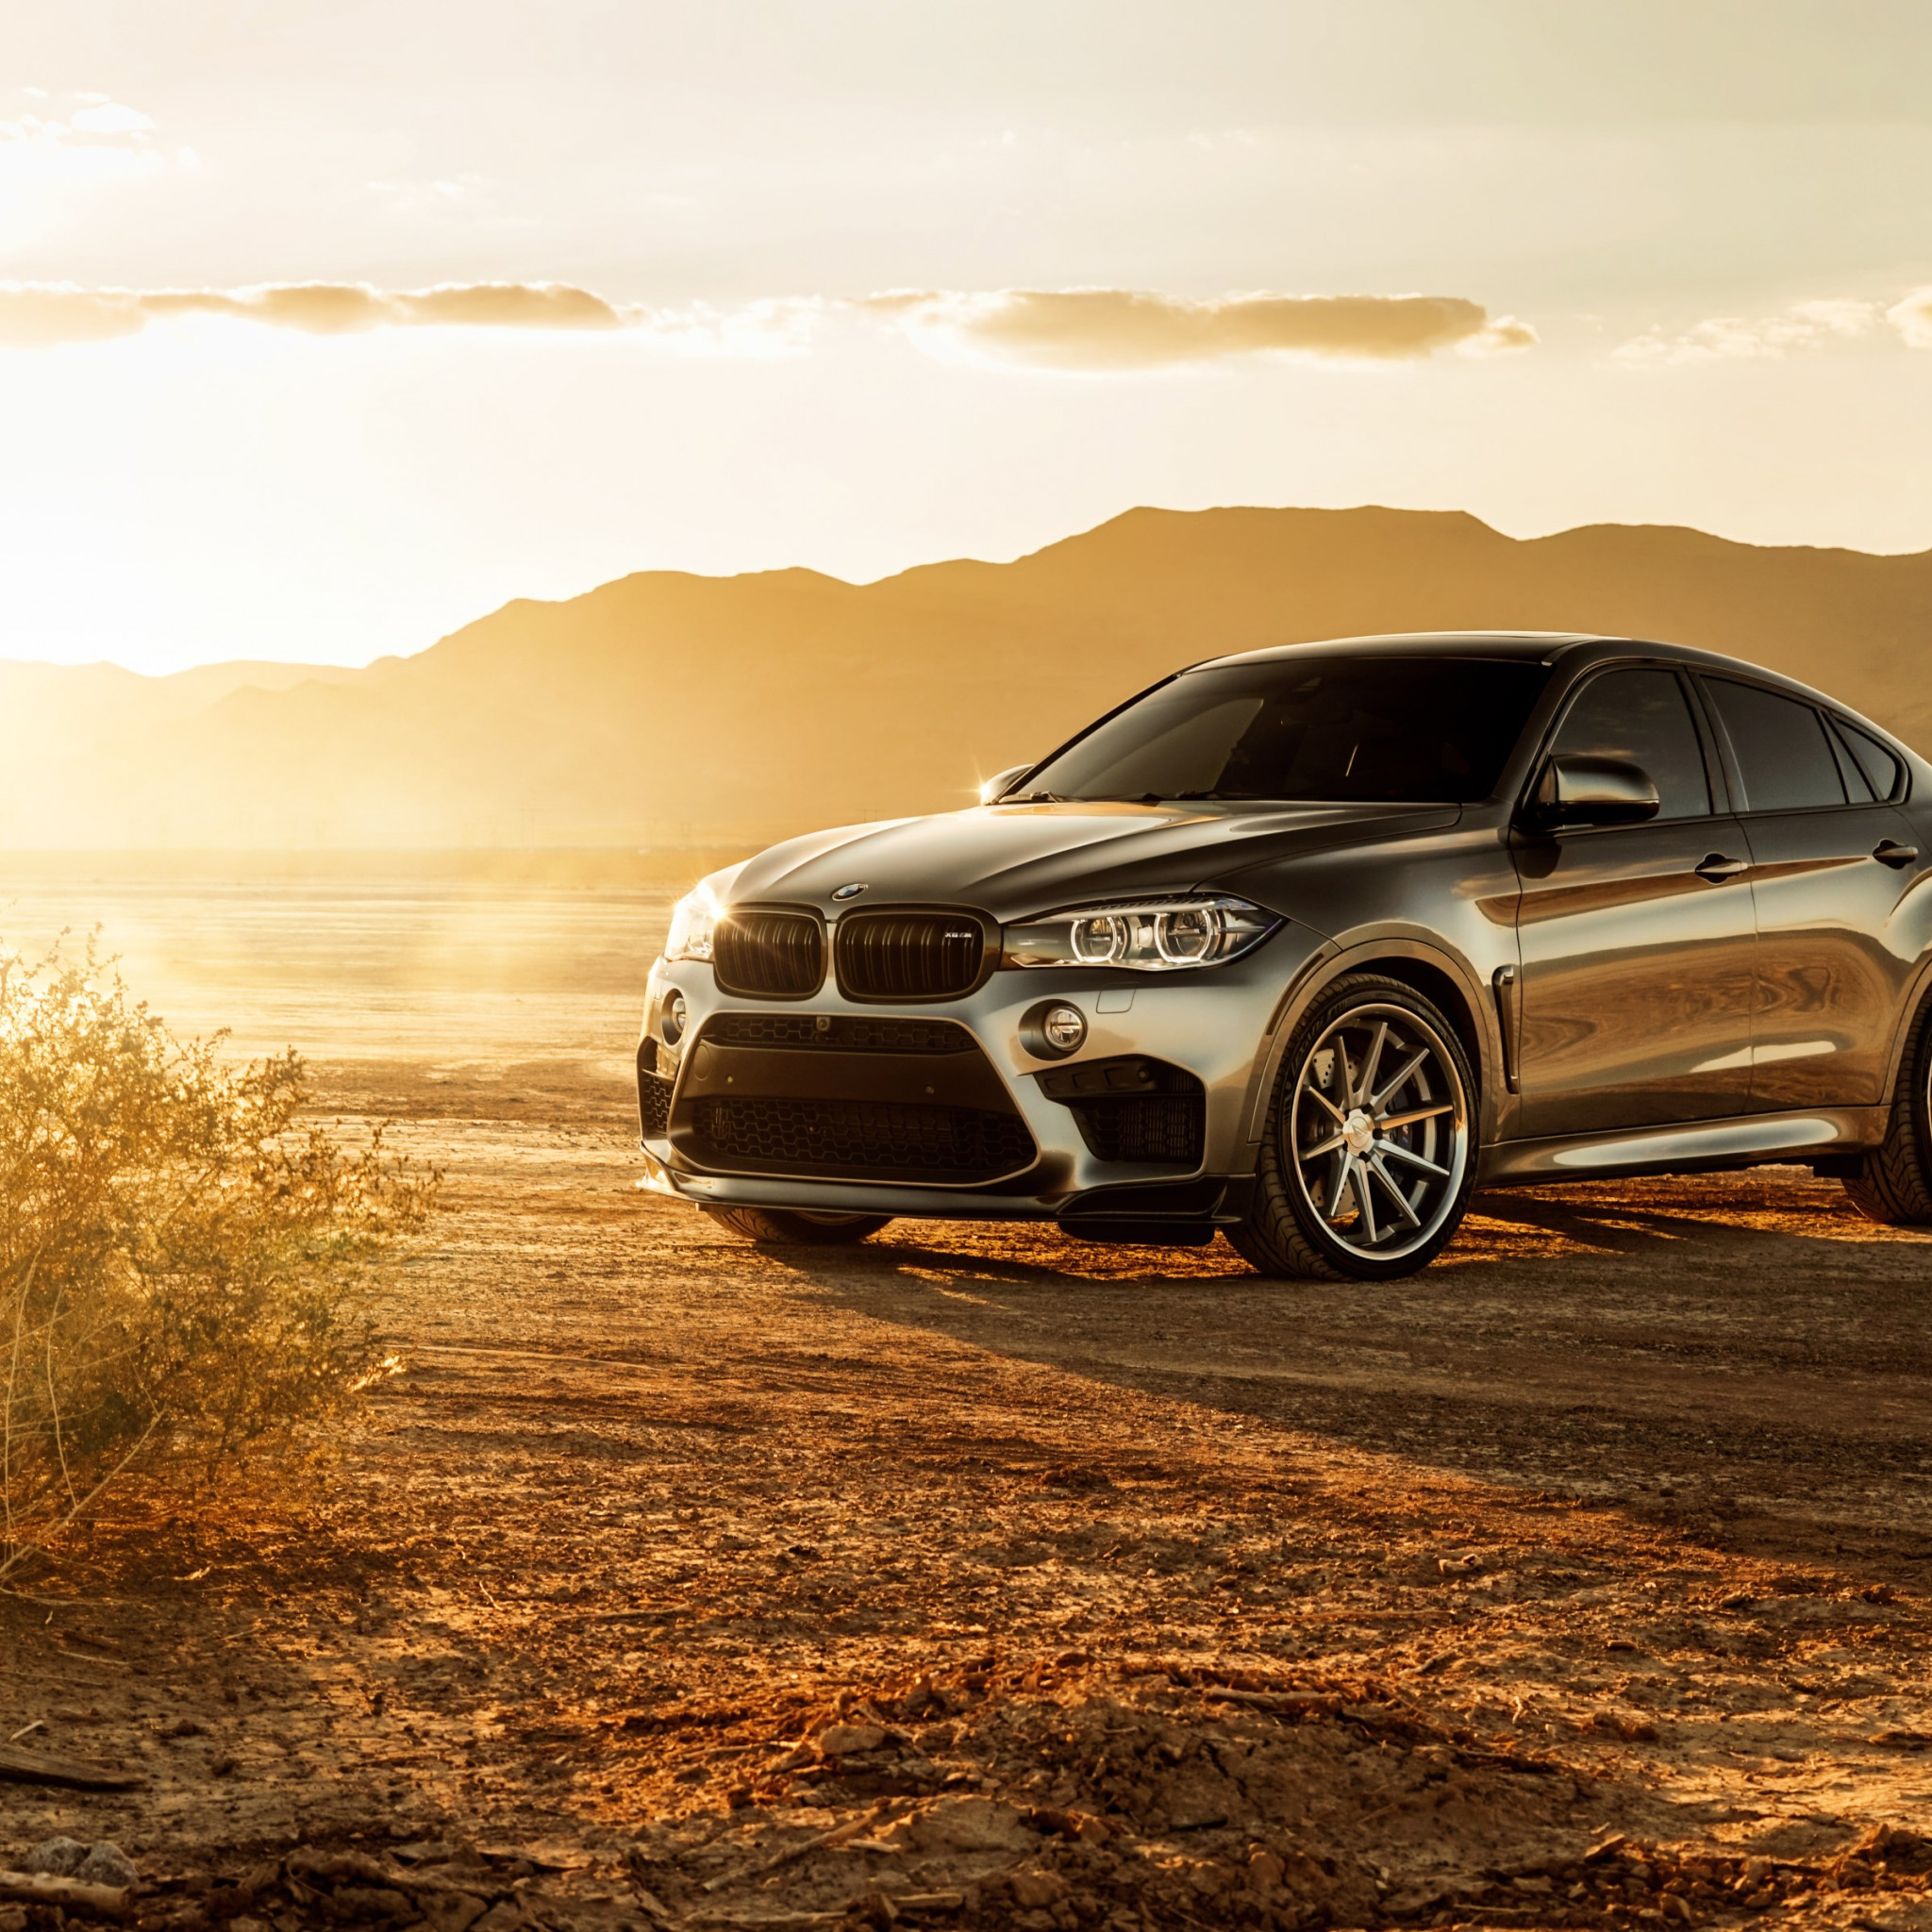 Ferrada BMW X6M Glory | 2048x2048 wallpaper